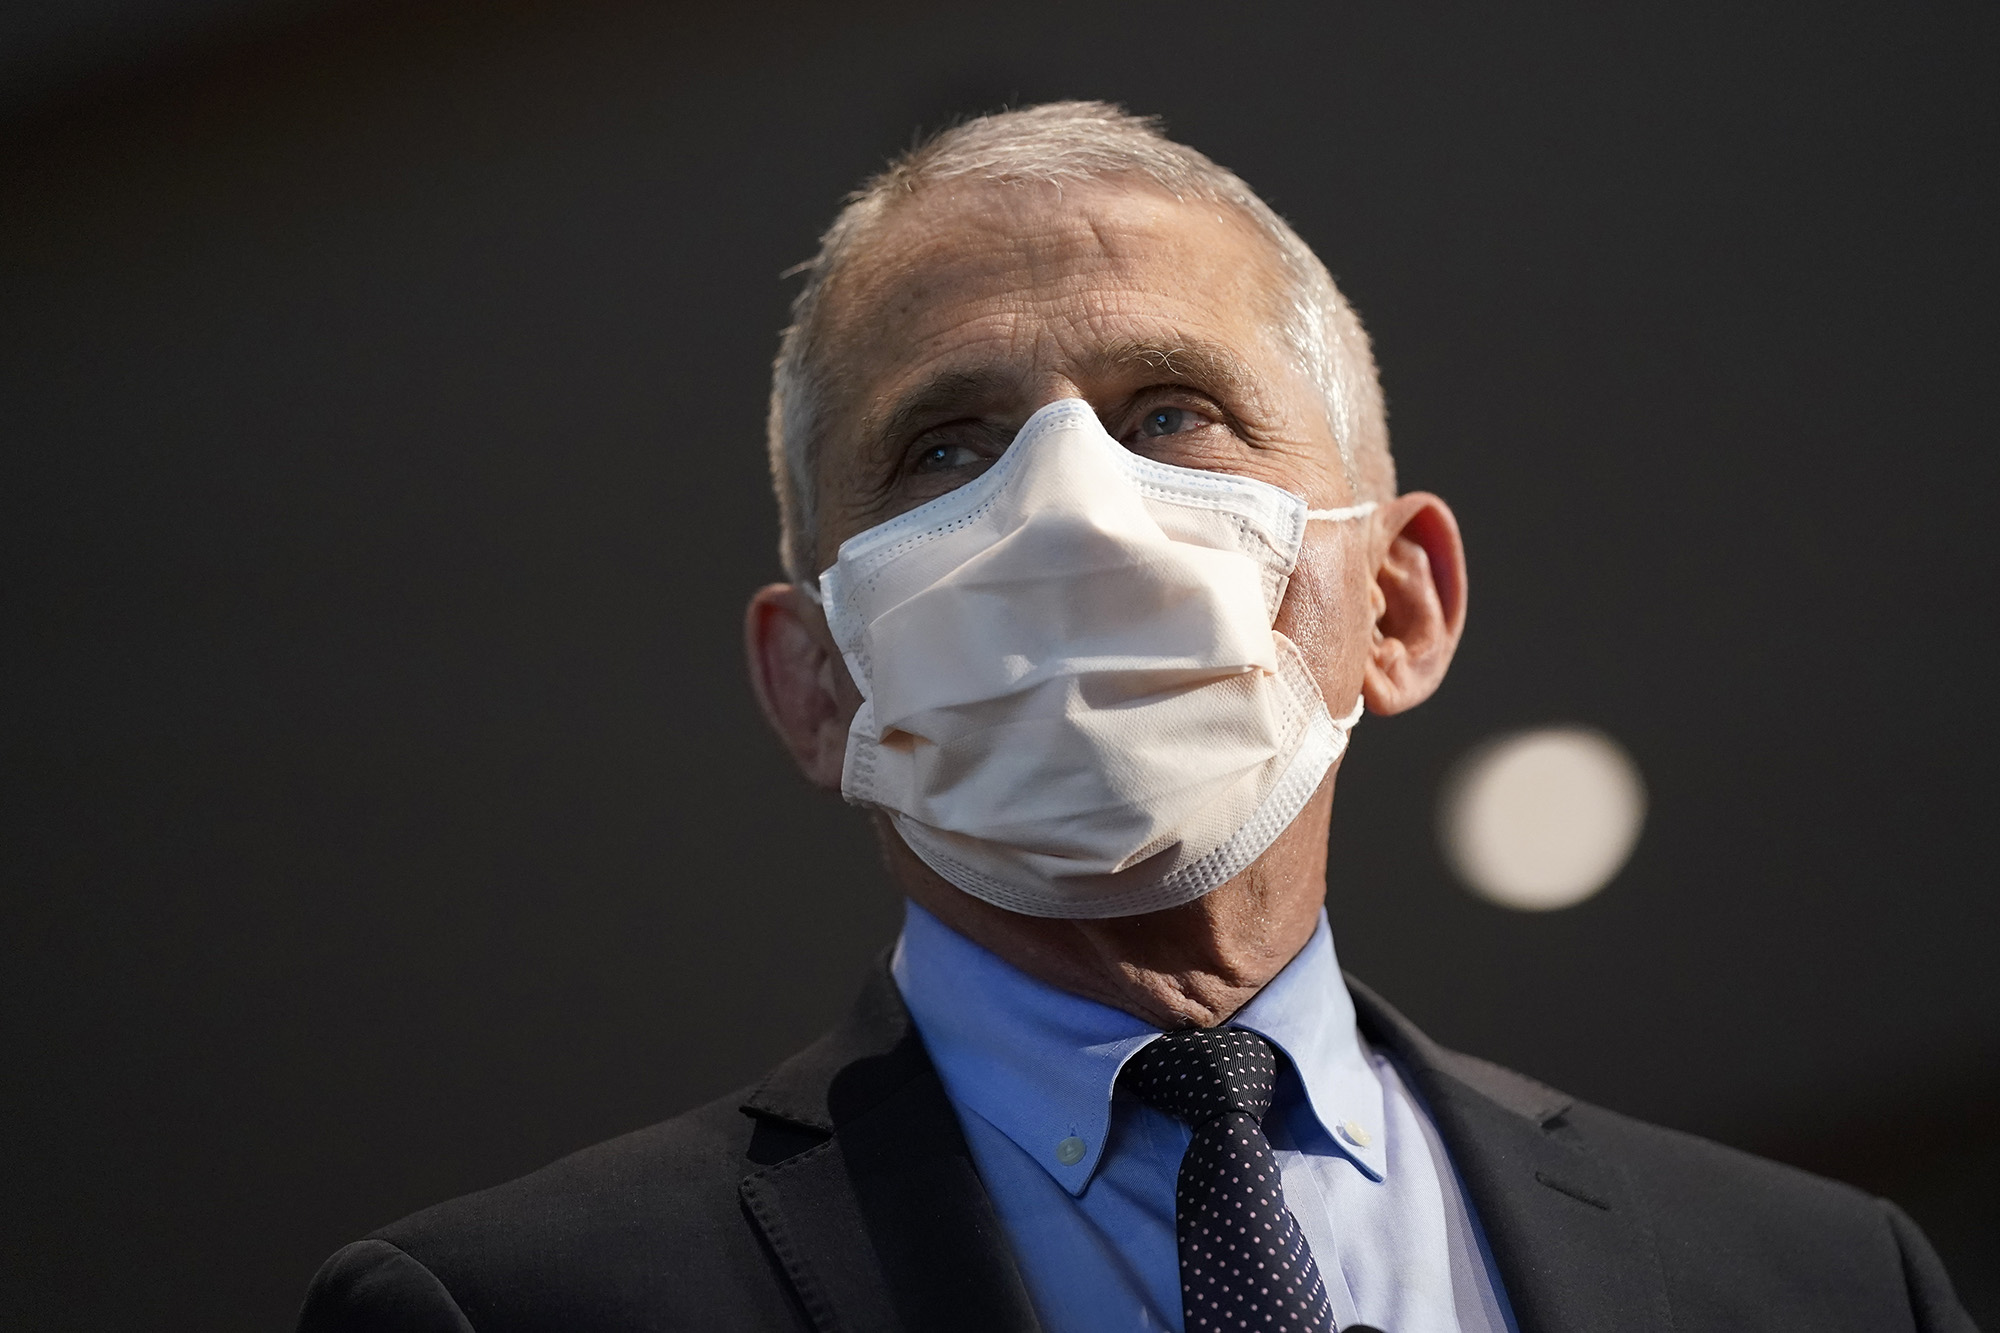 Anthony Fauci, director of the National Institute of Allergy and Infectious Diseases, speaks during at the NIH Clinical Center Masur Auditorium in Bethesda, Maryland, on Tuesday, December 22, 2020.